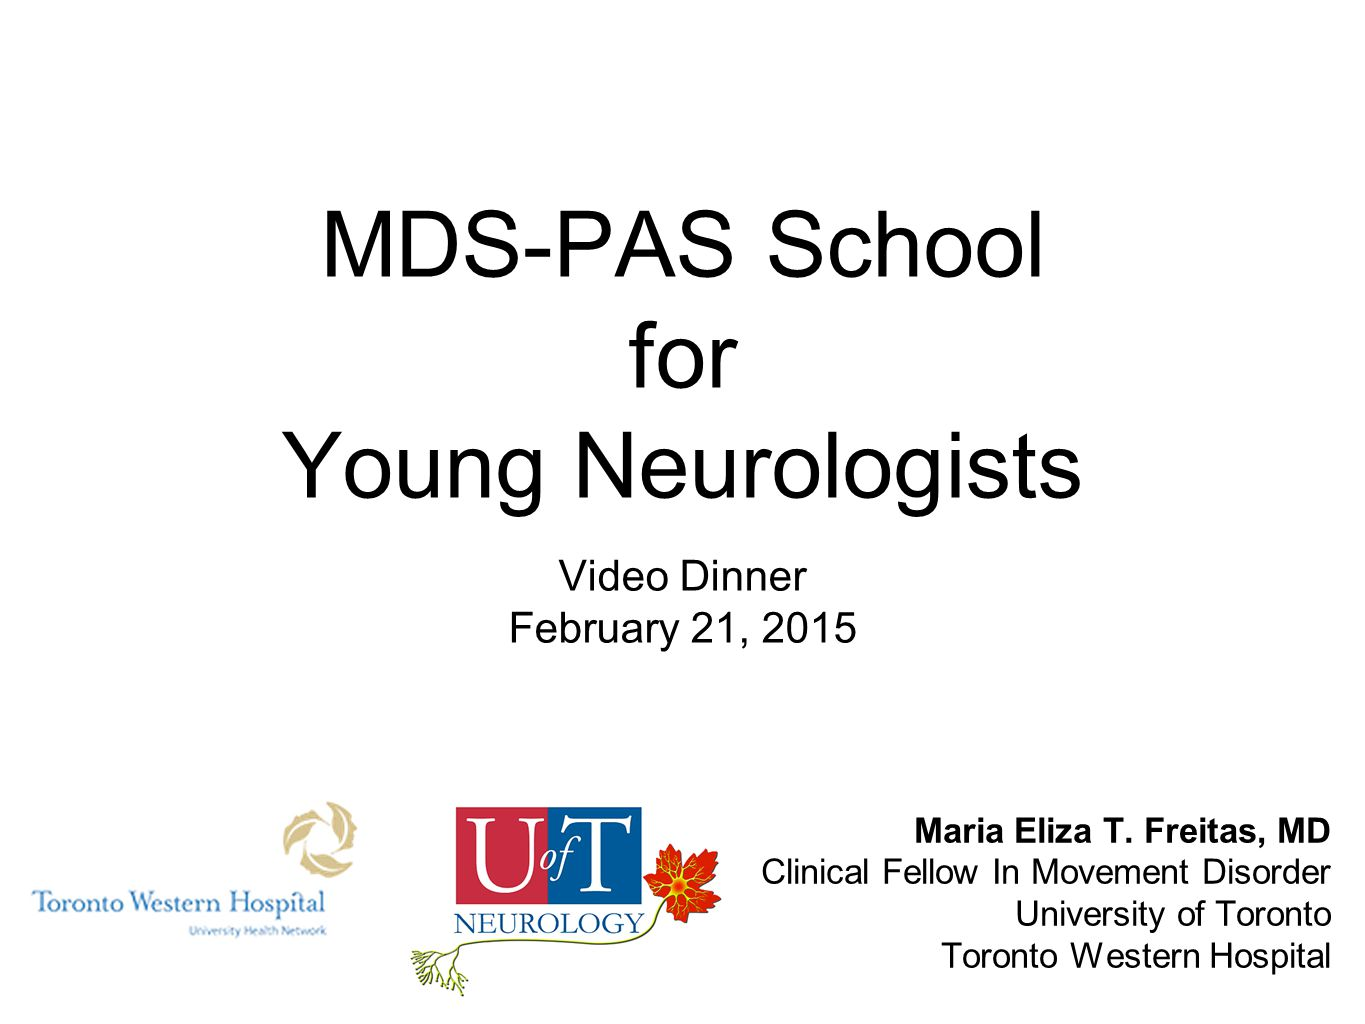 MDS-PAS School for Young Neurologists Video Dinner February 21, 2015 Maria Eliza T.